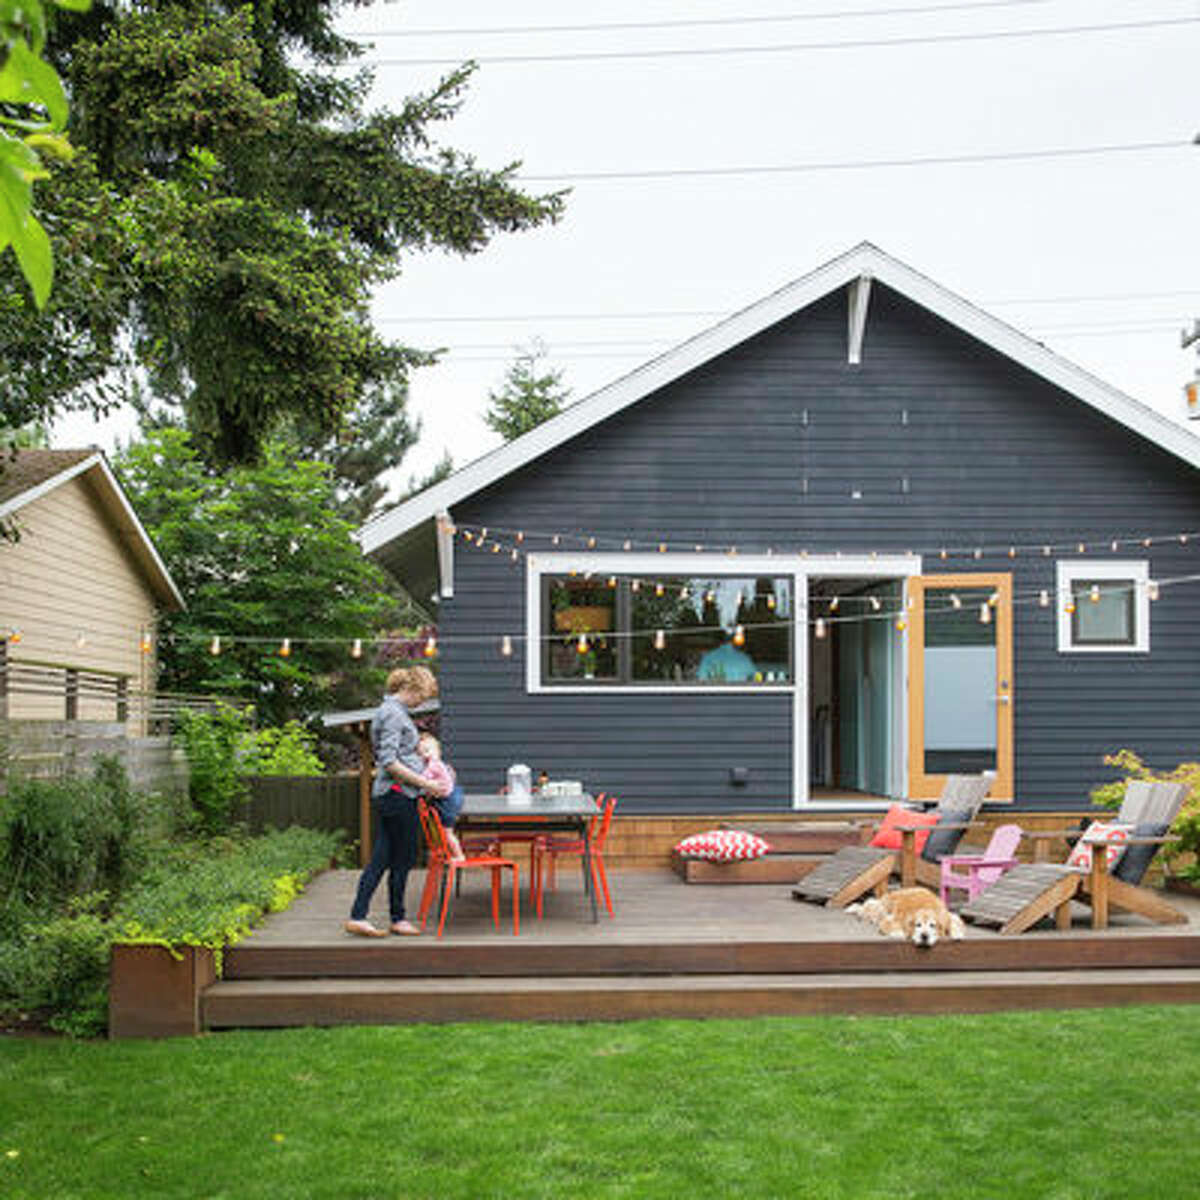 Live outdoors With interior space at a premium, these homeowners make the most of their backyard that effectively doubles their living space. With the big kitchen window and glass door (which is typically left open on nice days), they consider it an extension of their great room. During the summer, they do a lot of al fresco dining, hosting friends for barbeques, and lots of time playing with their child and dog. In addition to the expansive deck, there's a grassy play area surrounded by northwest-friendly plants, and a veggie garden planted in the strip of their